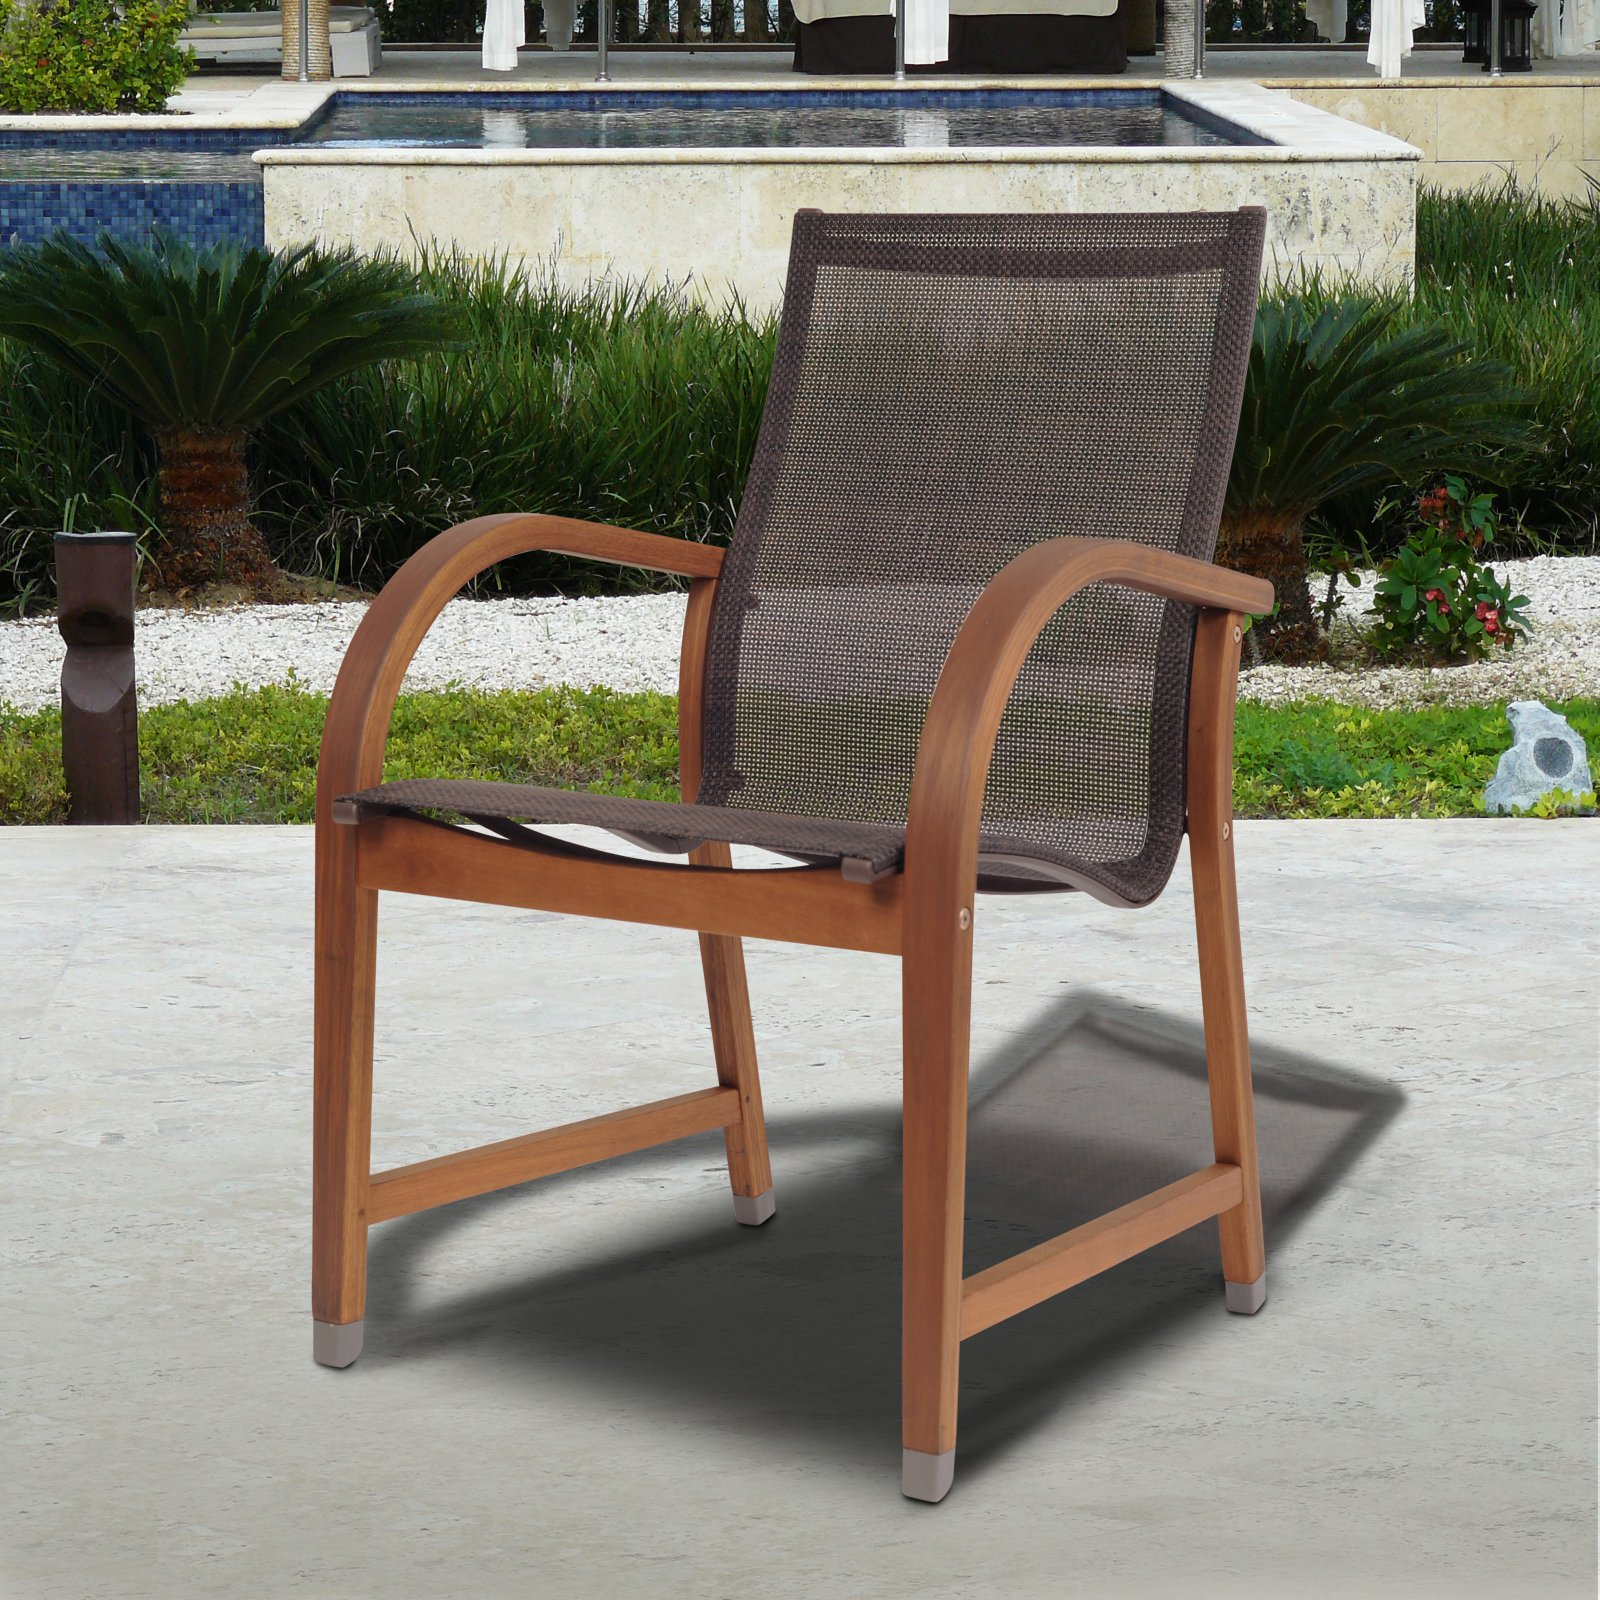 Amazonia Indiana 4 Piece Sling Chairs